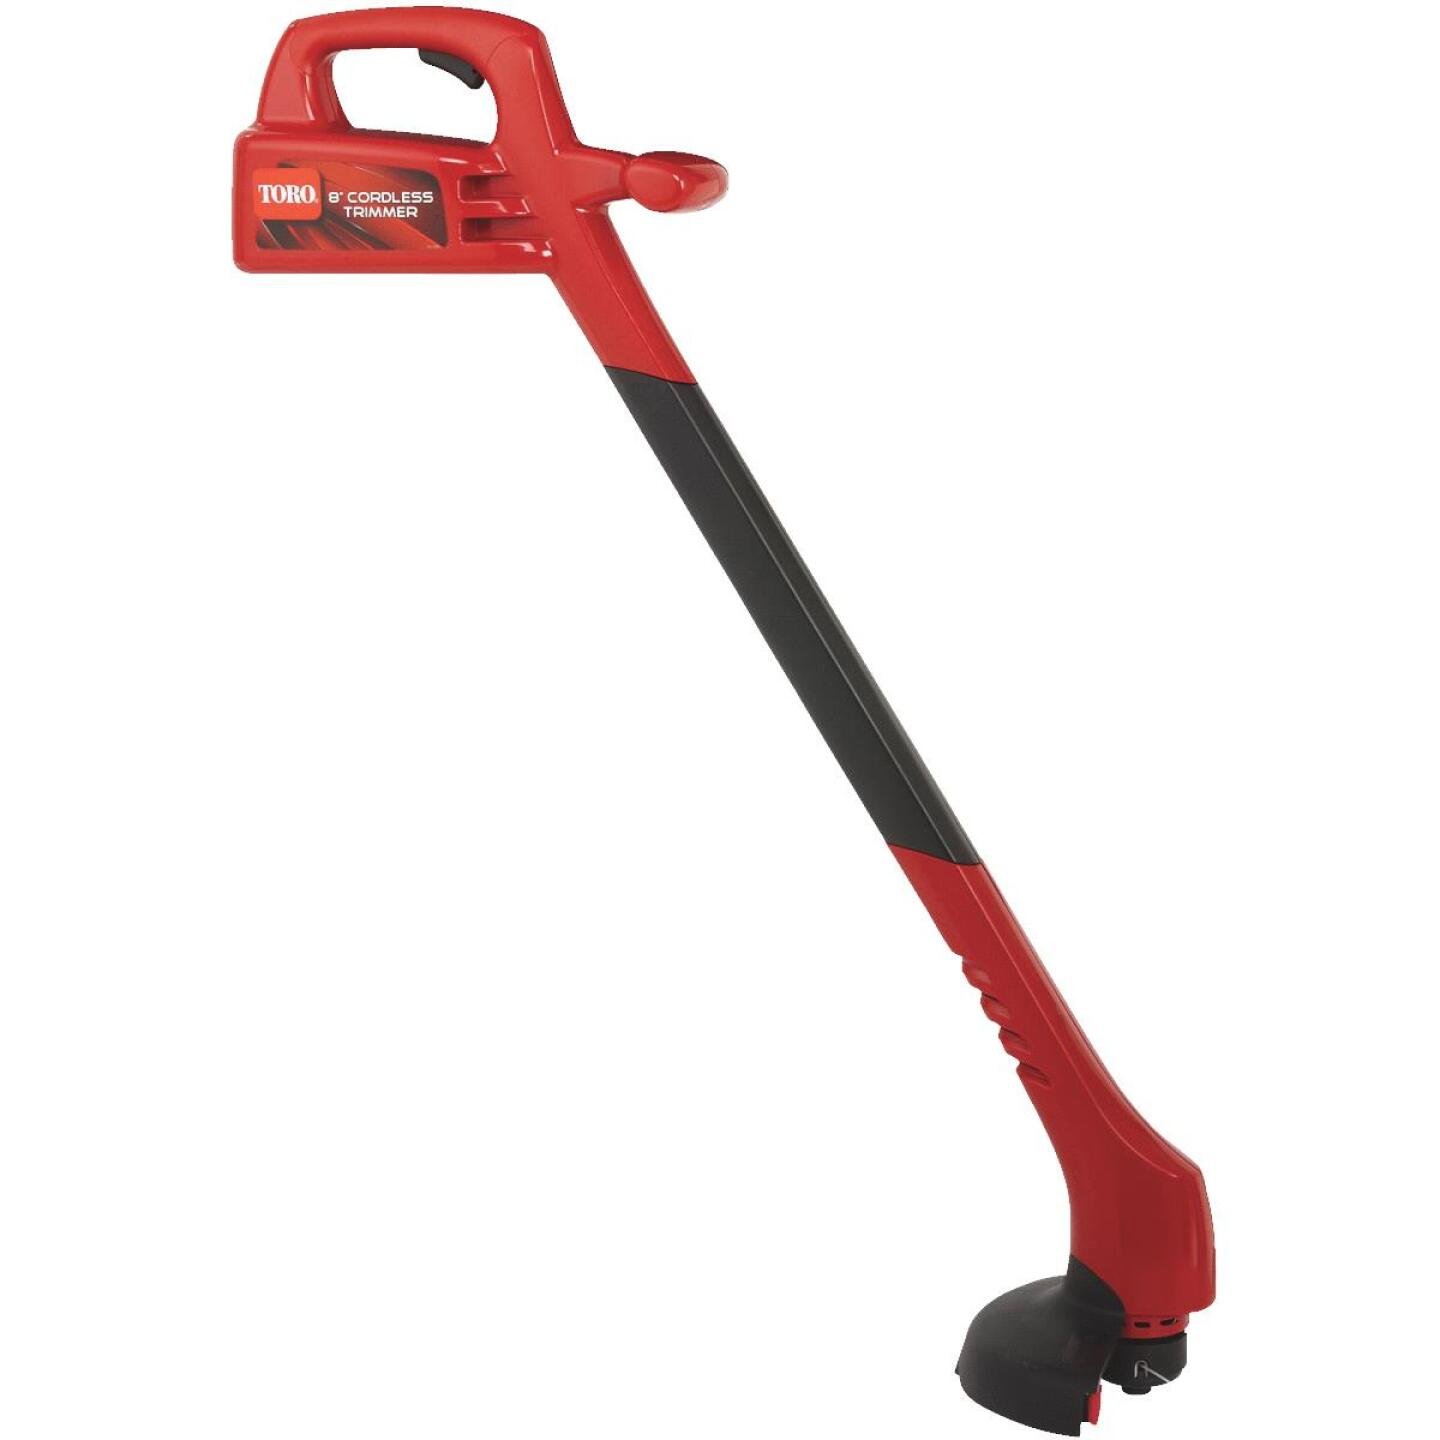 Toro 12V 8 In. Ni-Cad Straight Cordless String Trimmer Image 9